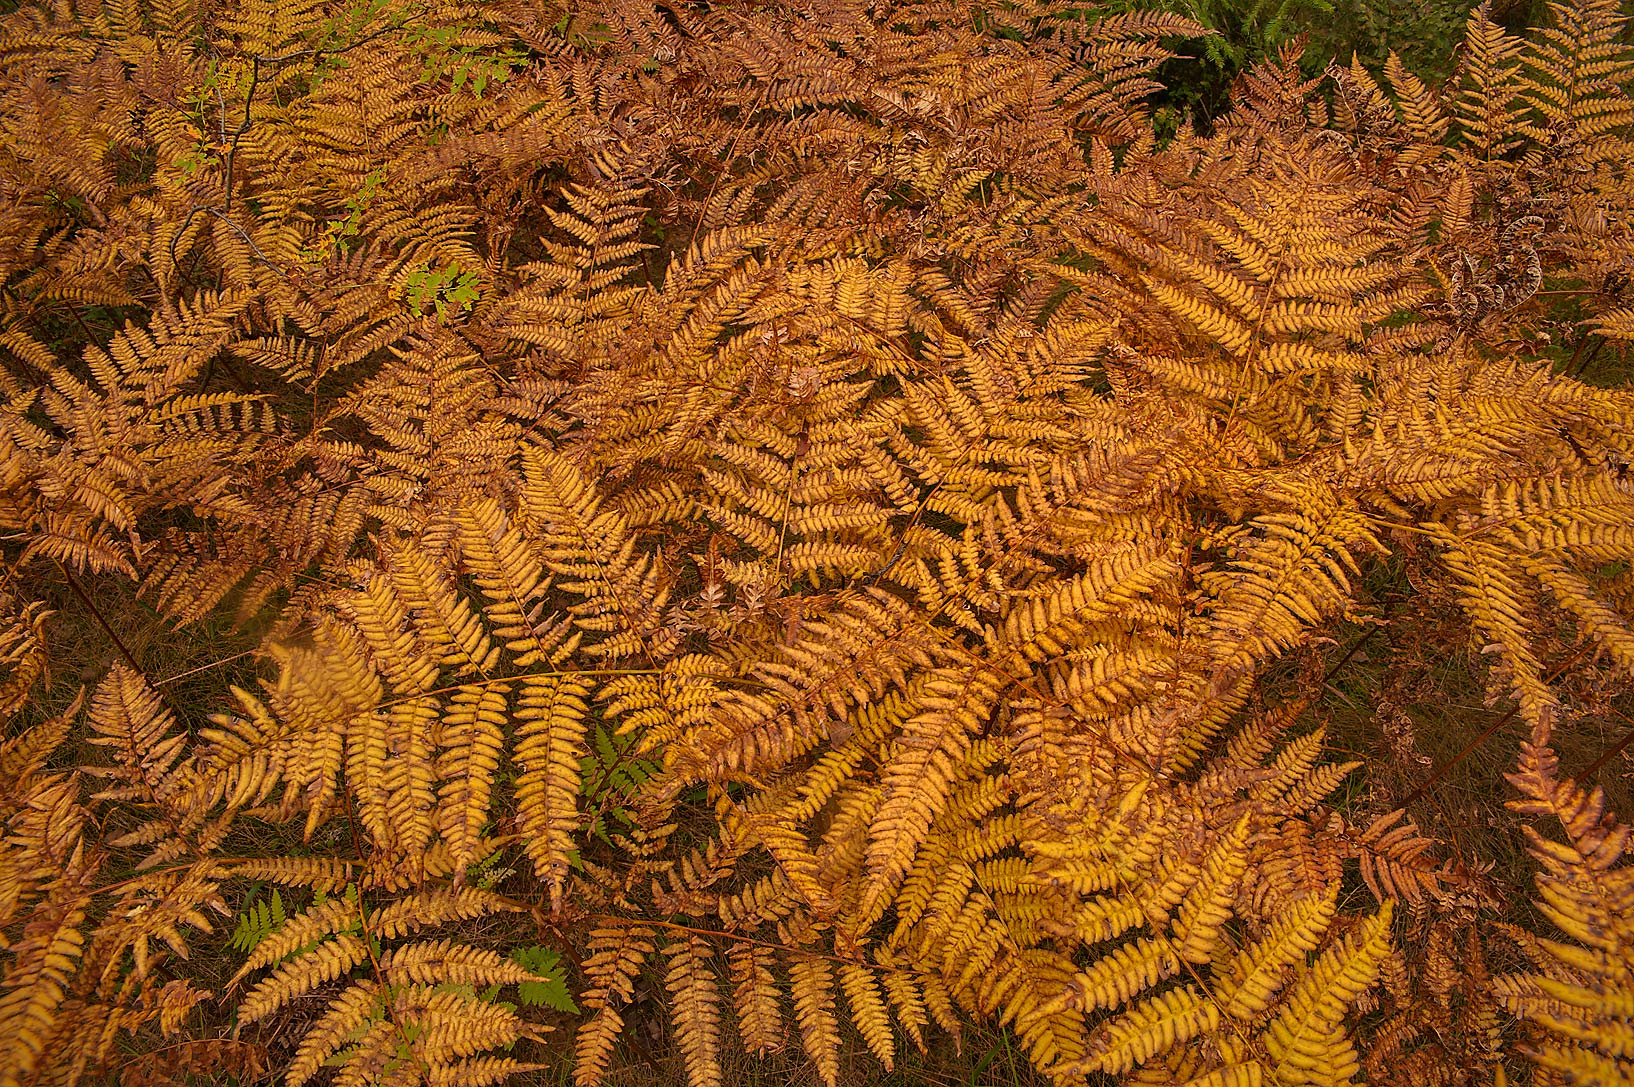 Fall colors of bracken ferns (Pteridium aquilinum...miles west from St.Petersburg. Russia